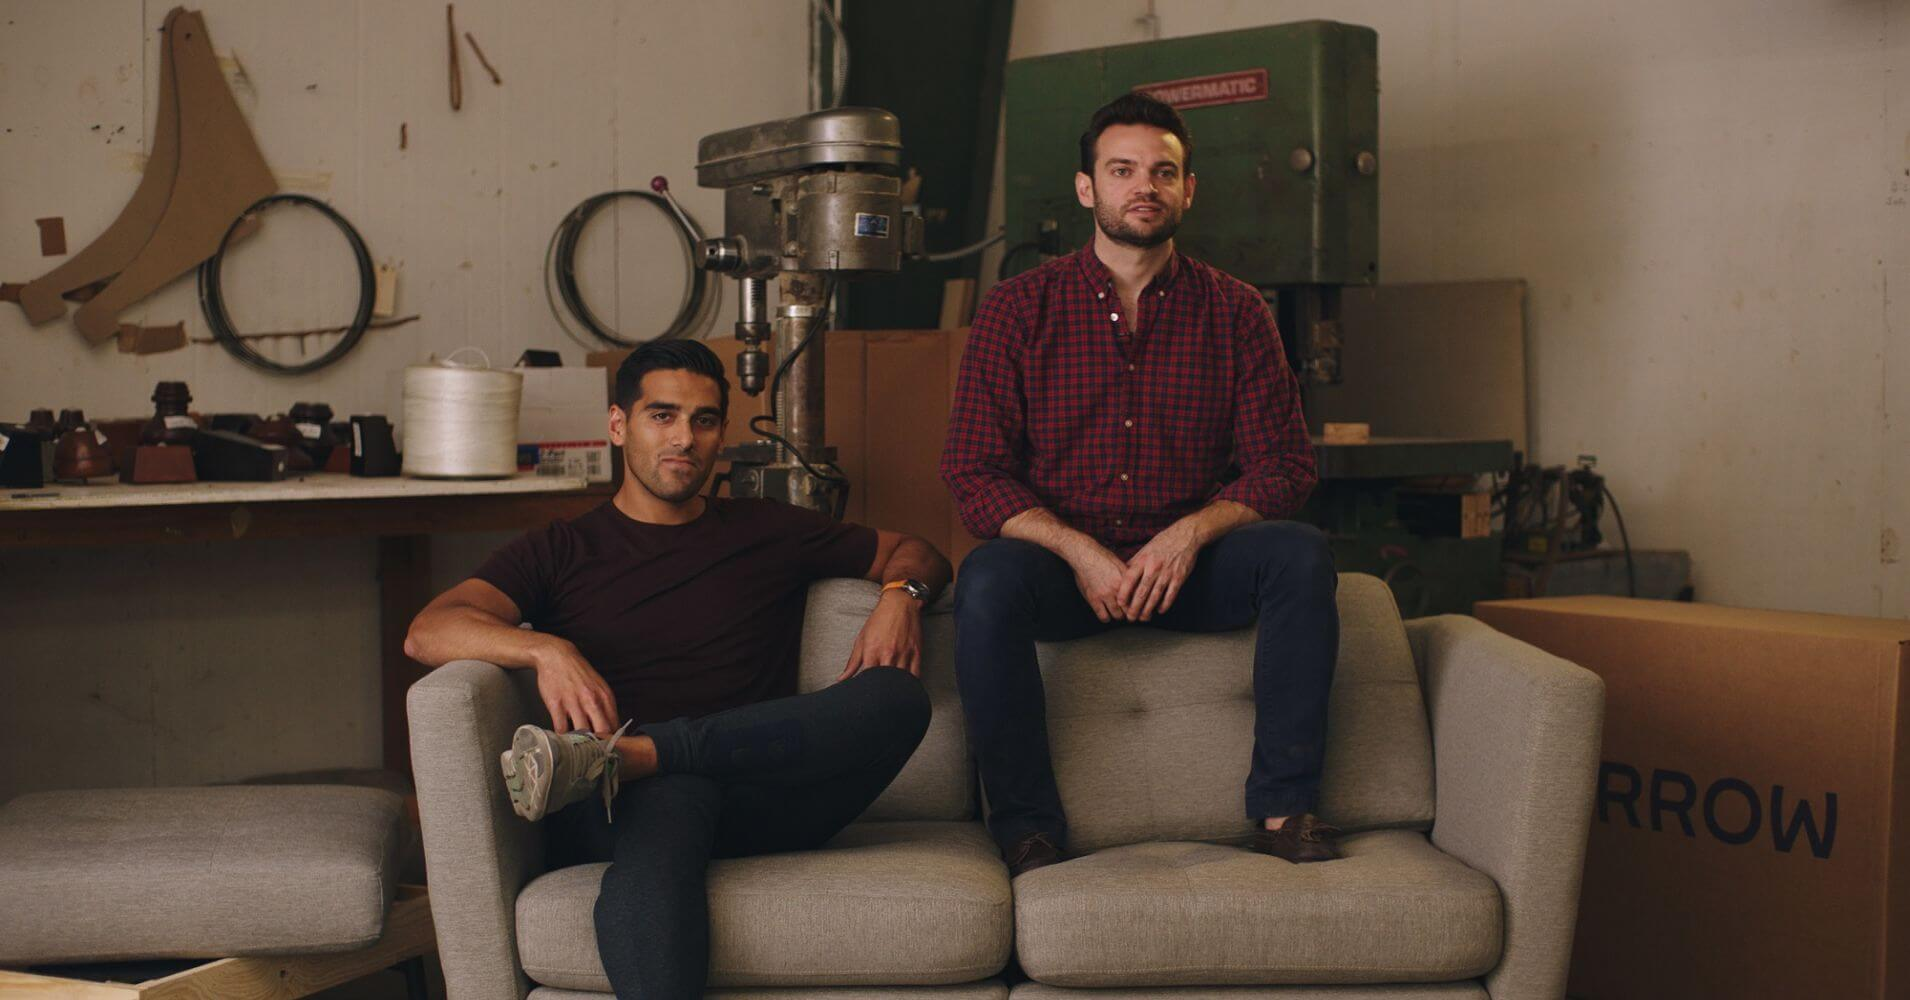 Kabeer Chopra (left) and Stephen Kuhl (right), co-founders of Burrow.